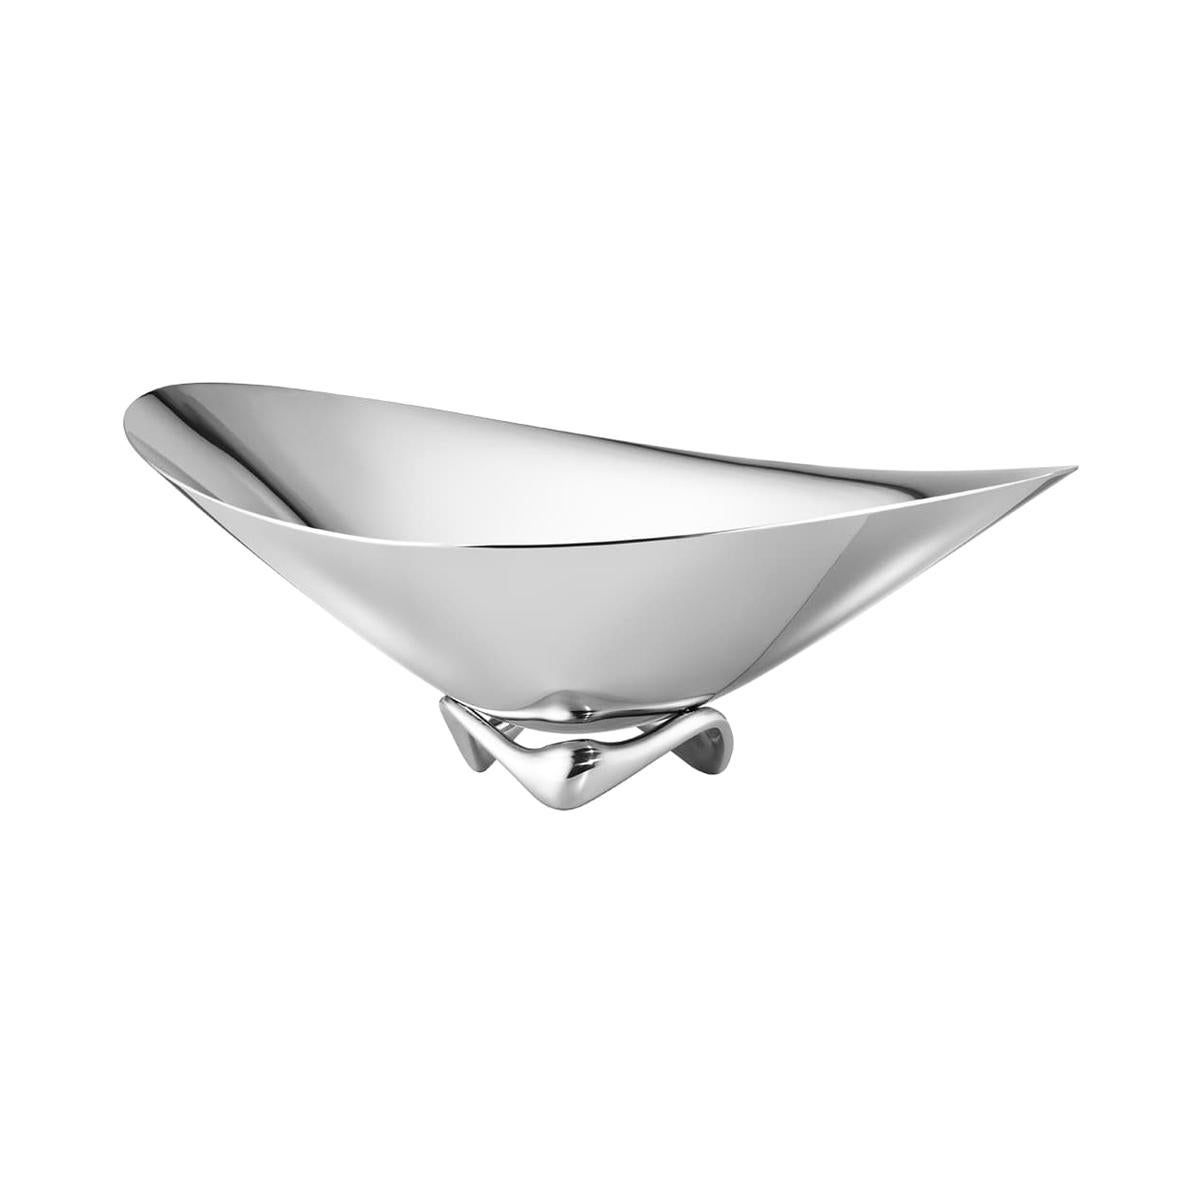 Georg Jensen Small Wave Bowl in Stainless Steel by Henning Koppel